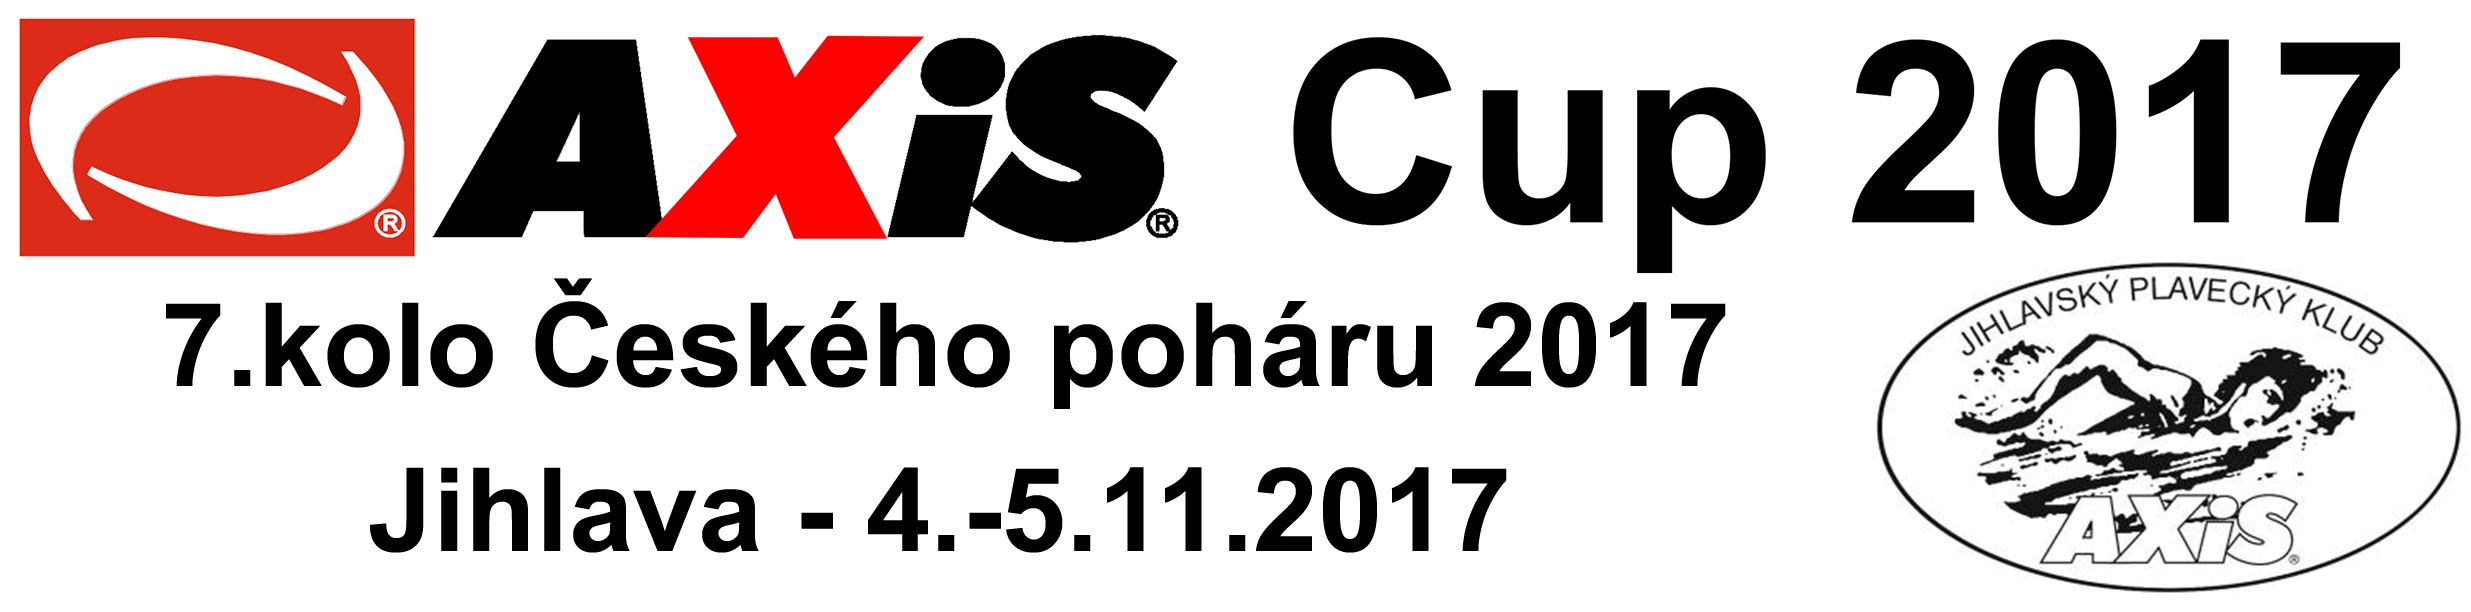 AXIS CUP 2017